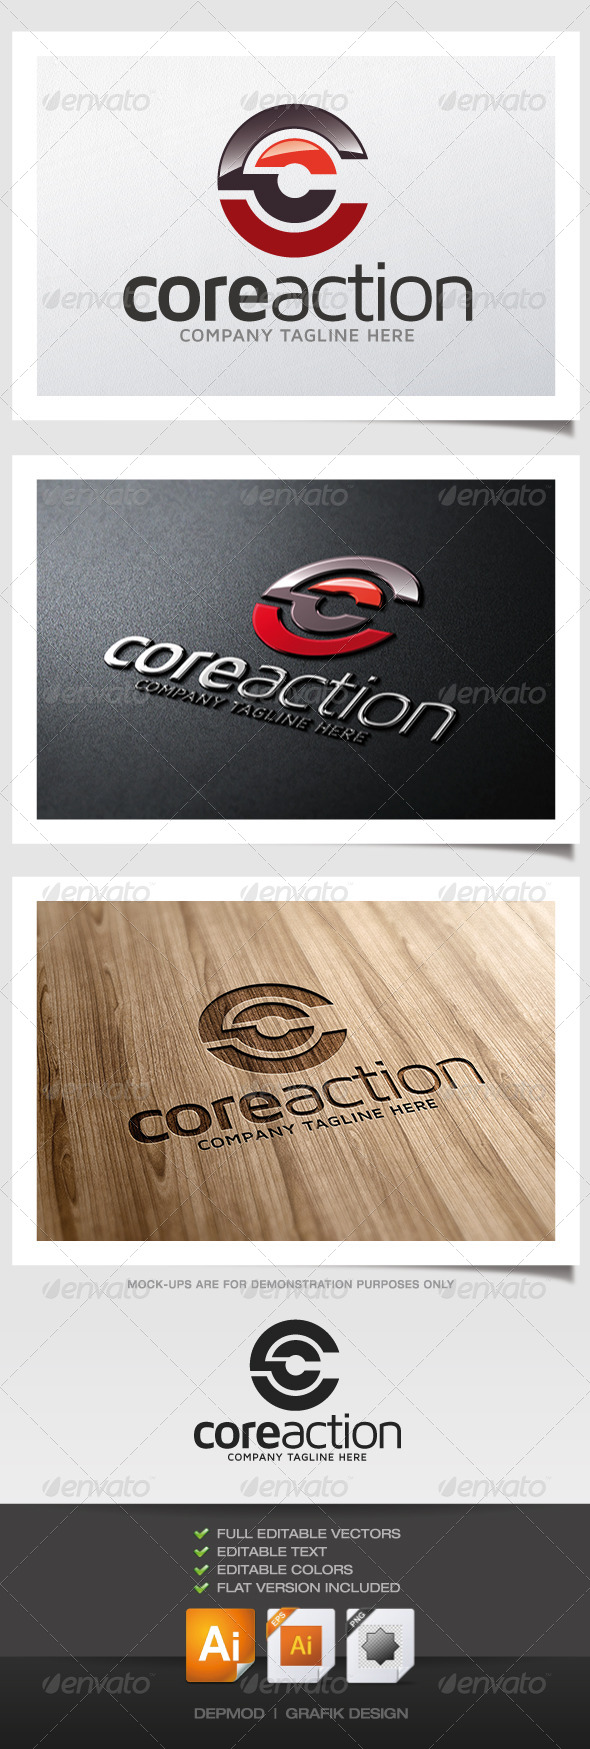 Core Action Logo - Abstract Logo Templates